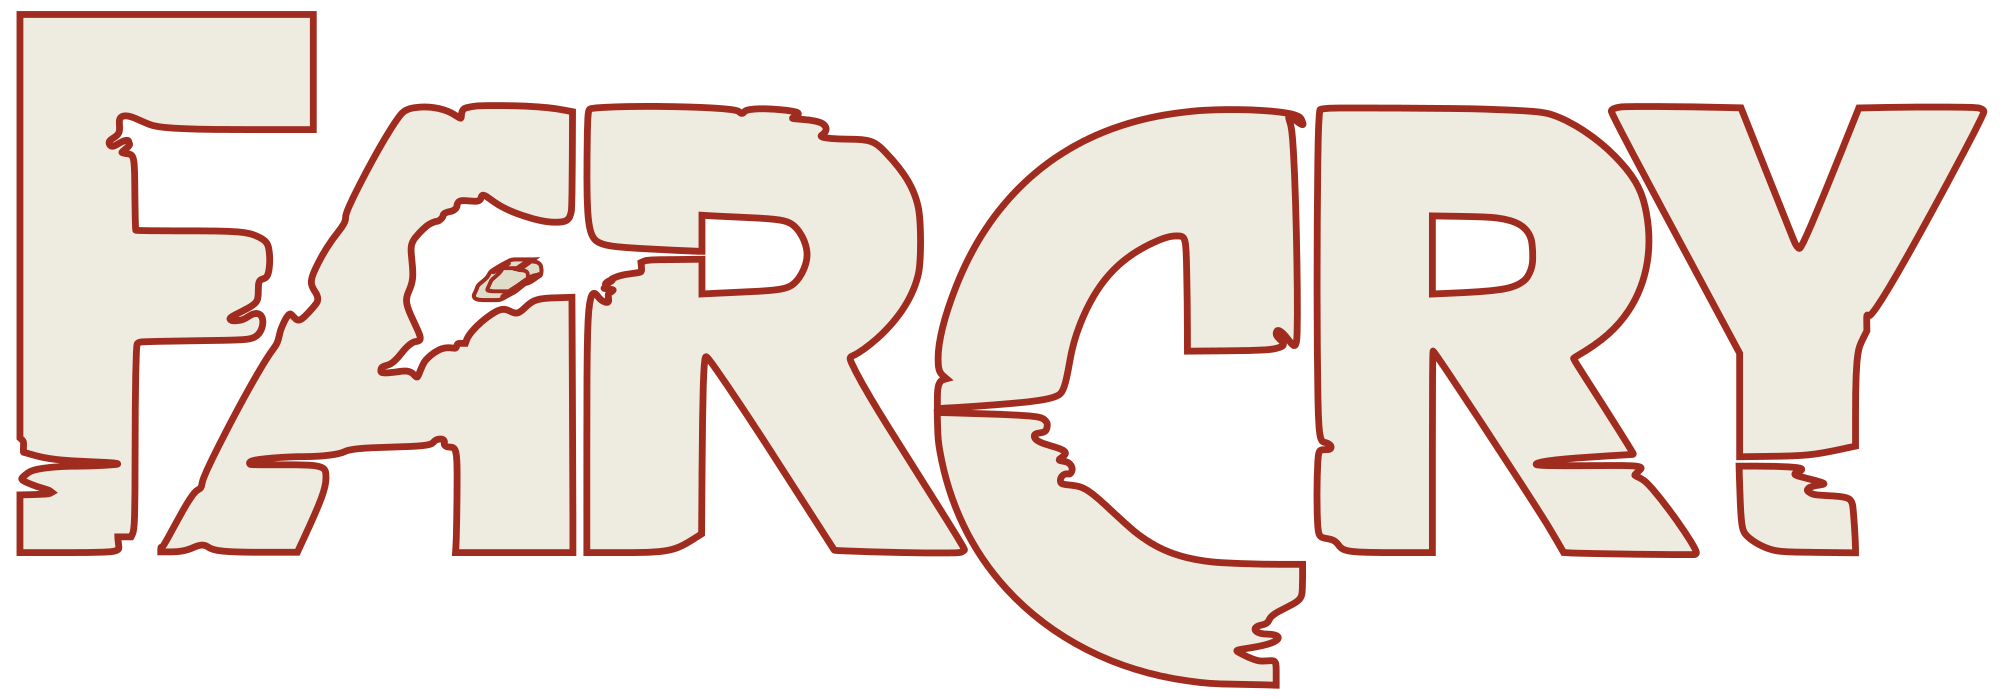 Far cry 5 logo png. Down current problems and